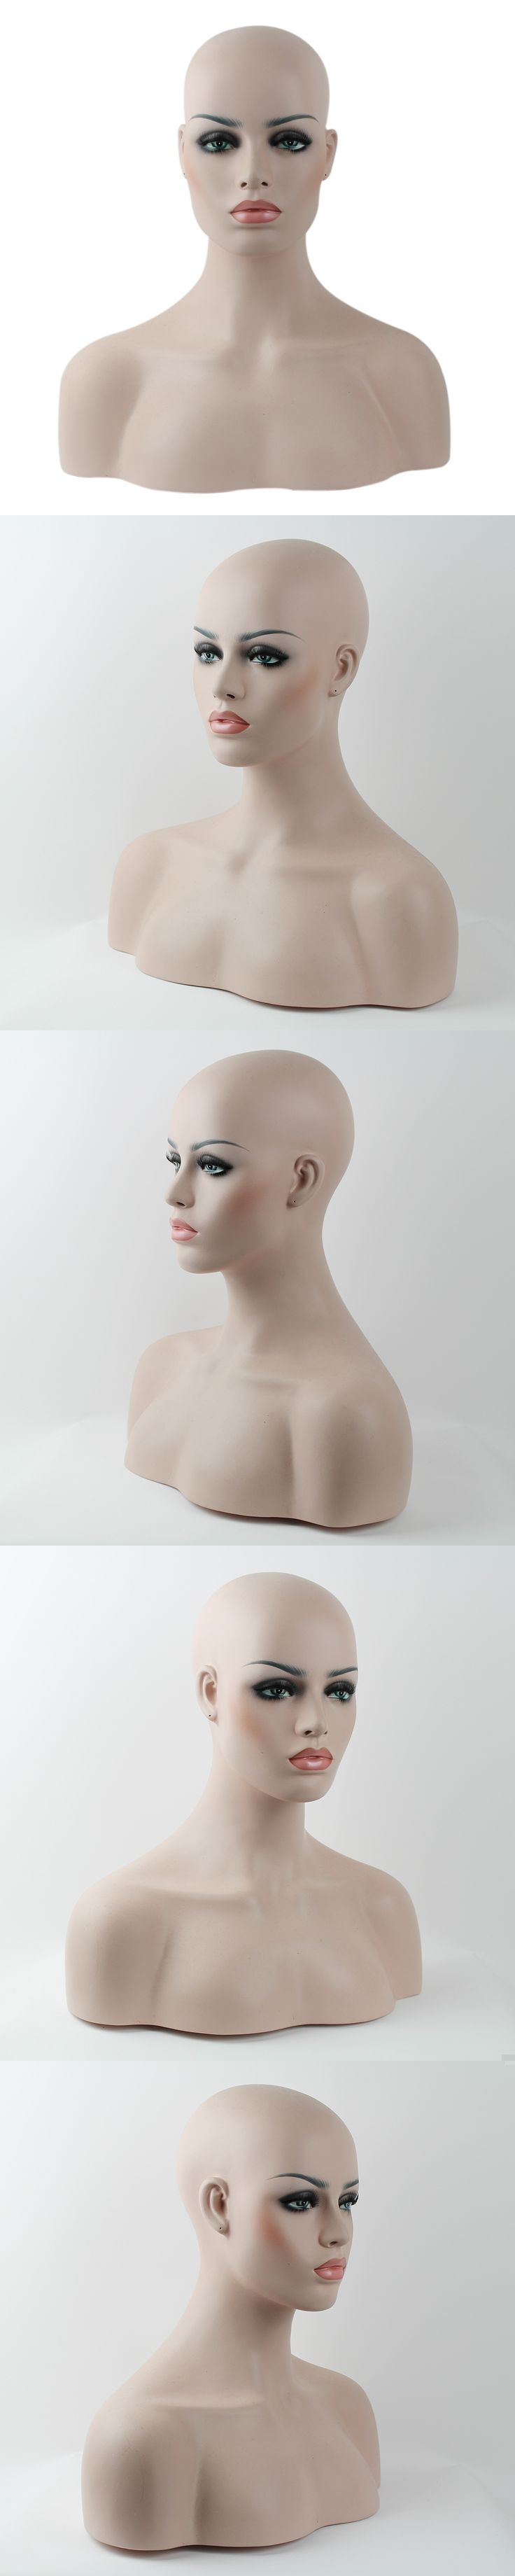 Fiberglass Mannequin Head Bust Necklace Jewelry Display Stand